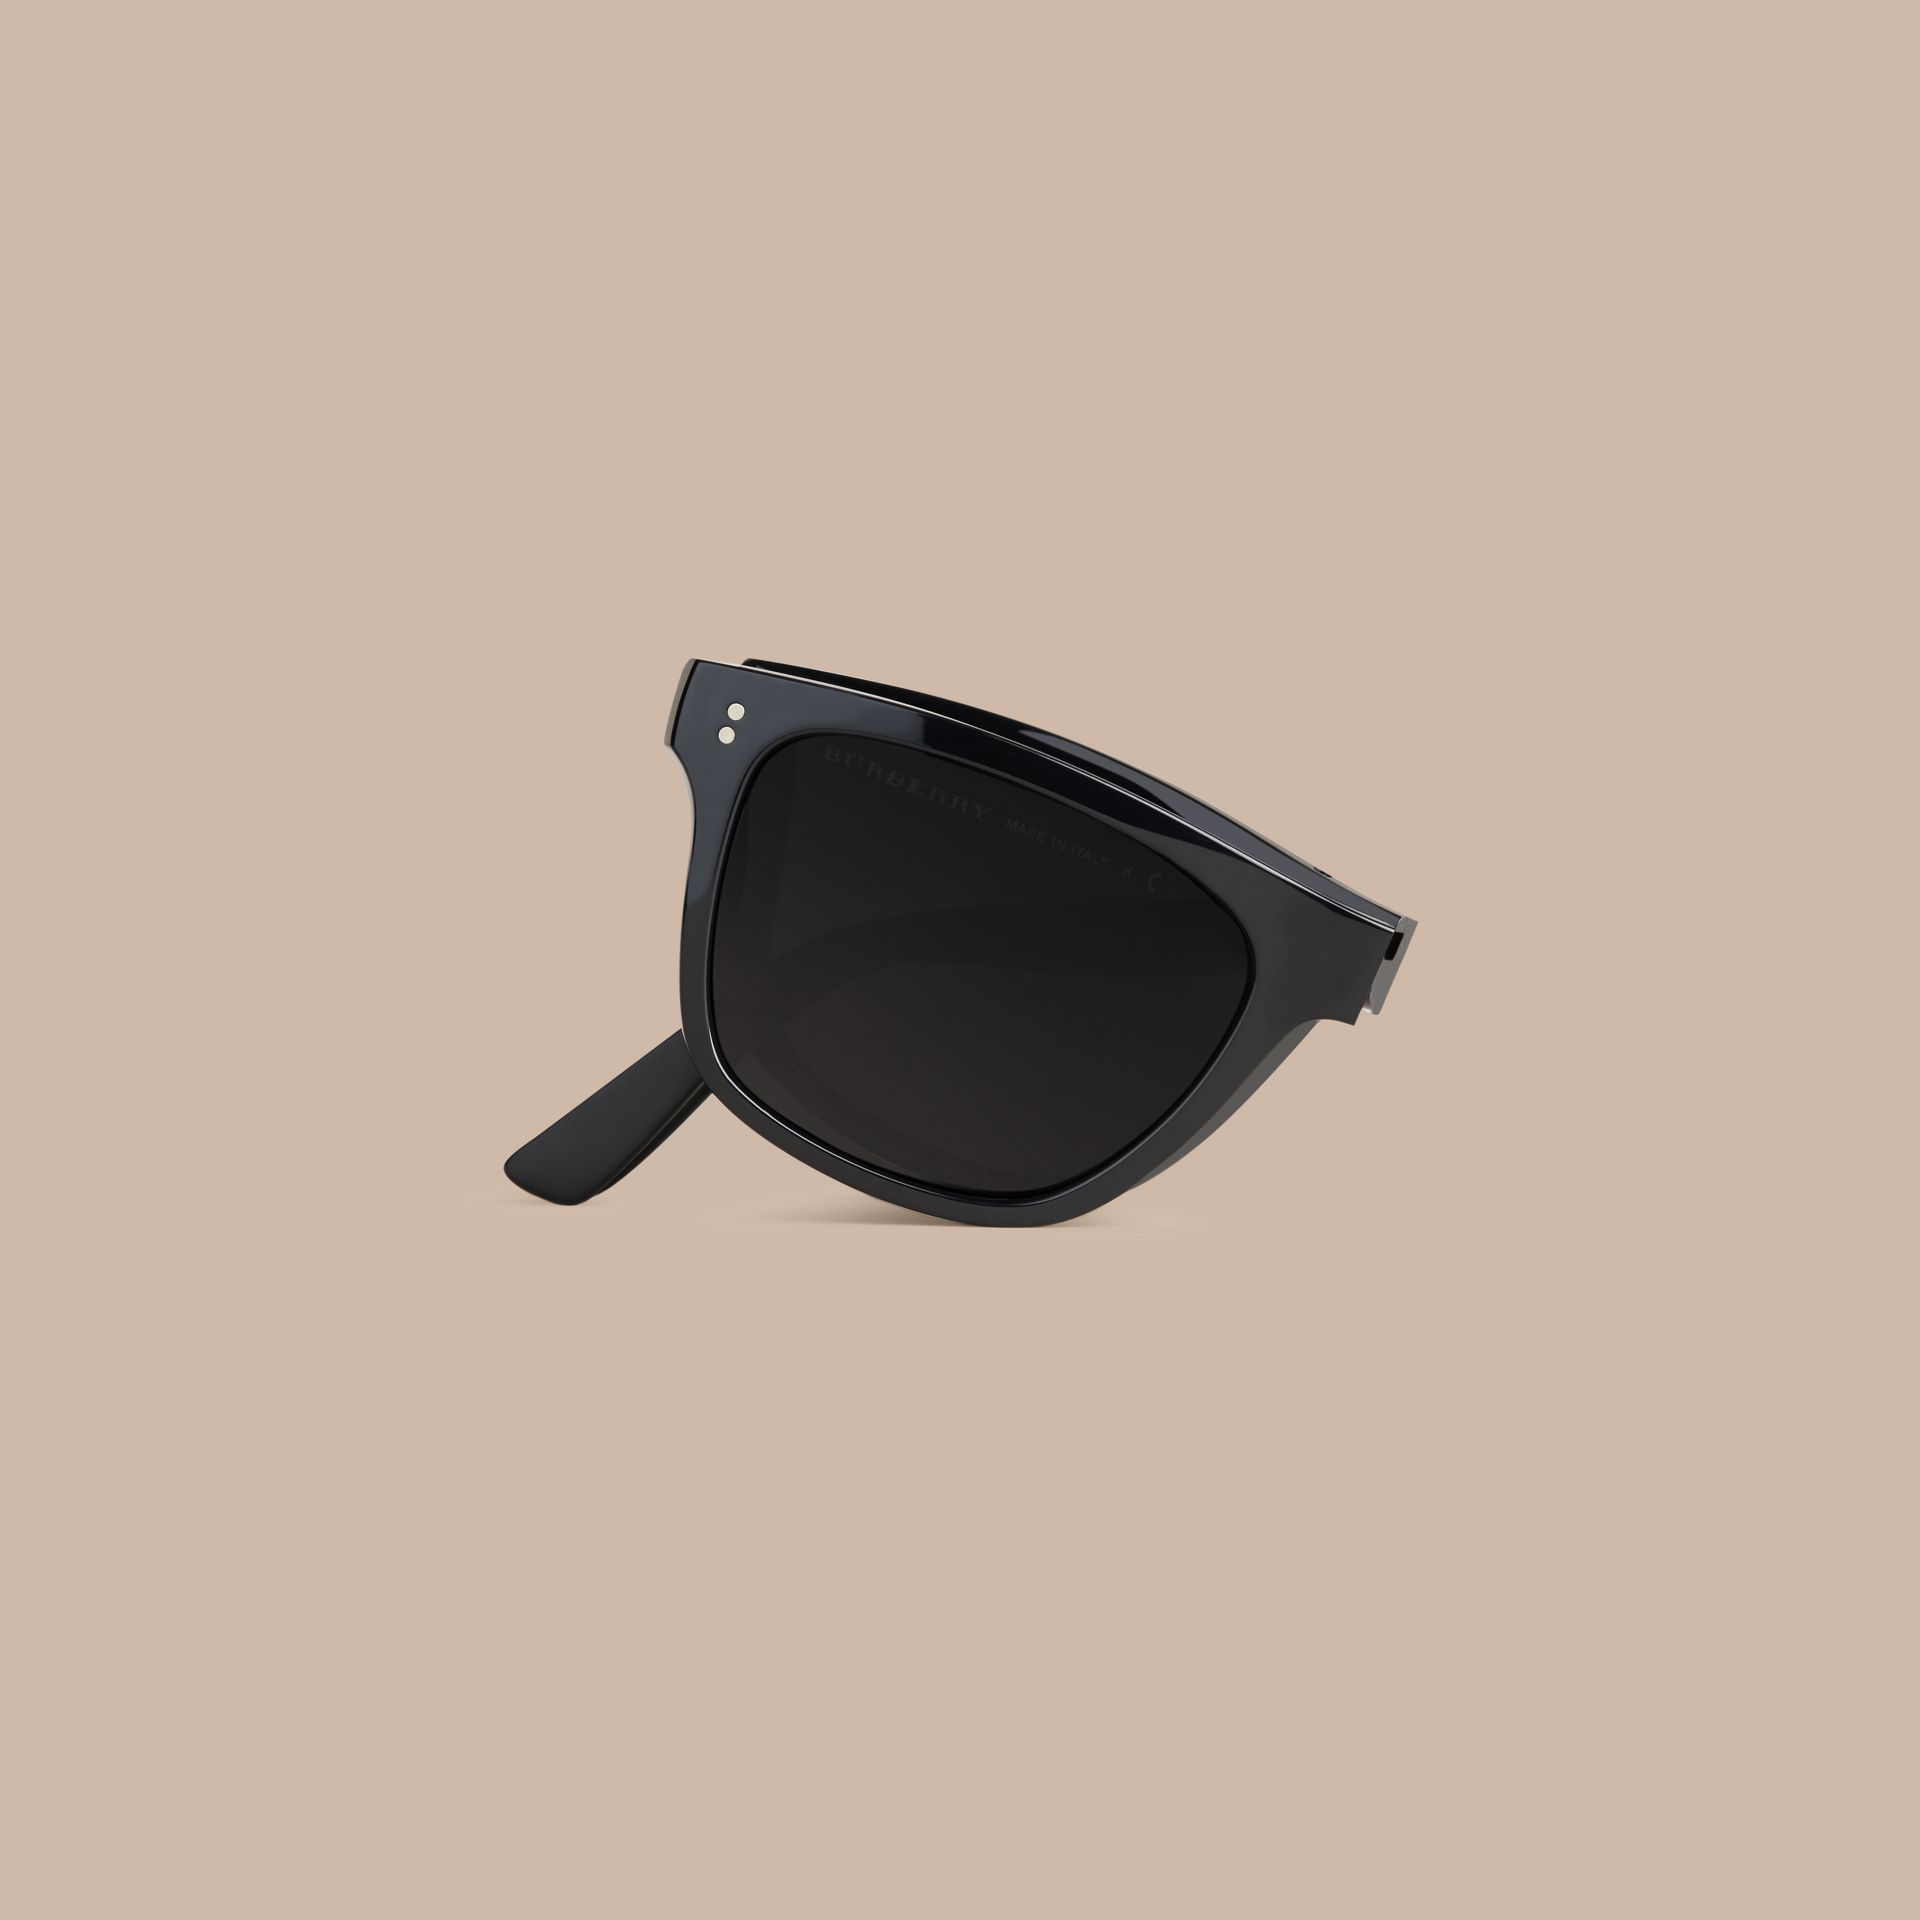 Folding Rectangular Frame Sunglasses in Black - Men | Burberry United Kingdom - gallery image 1